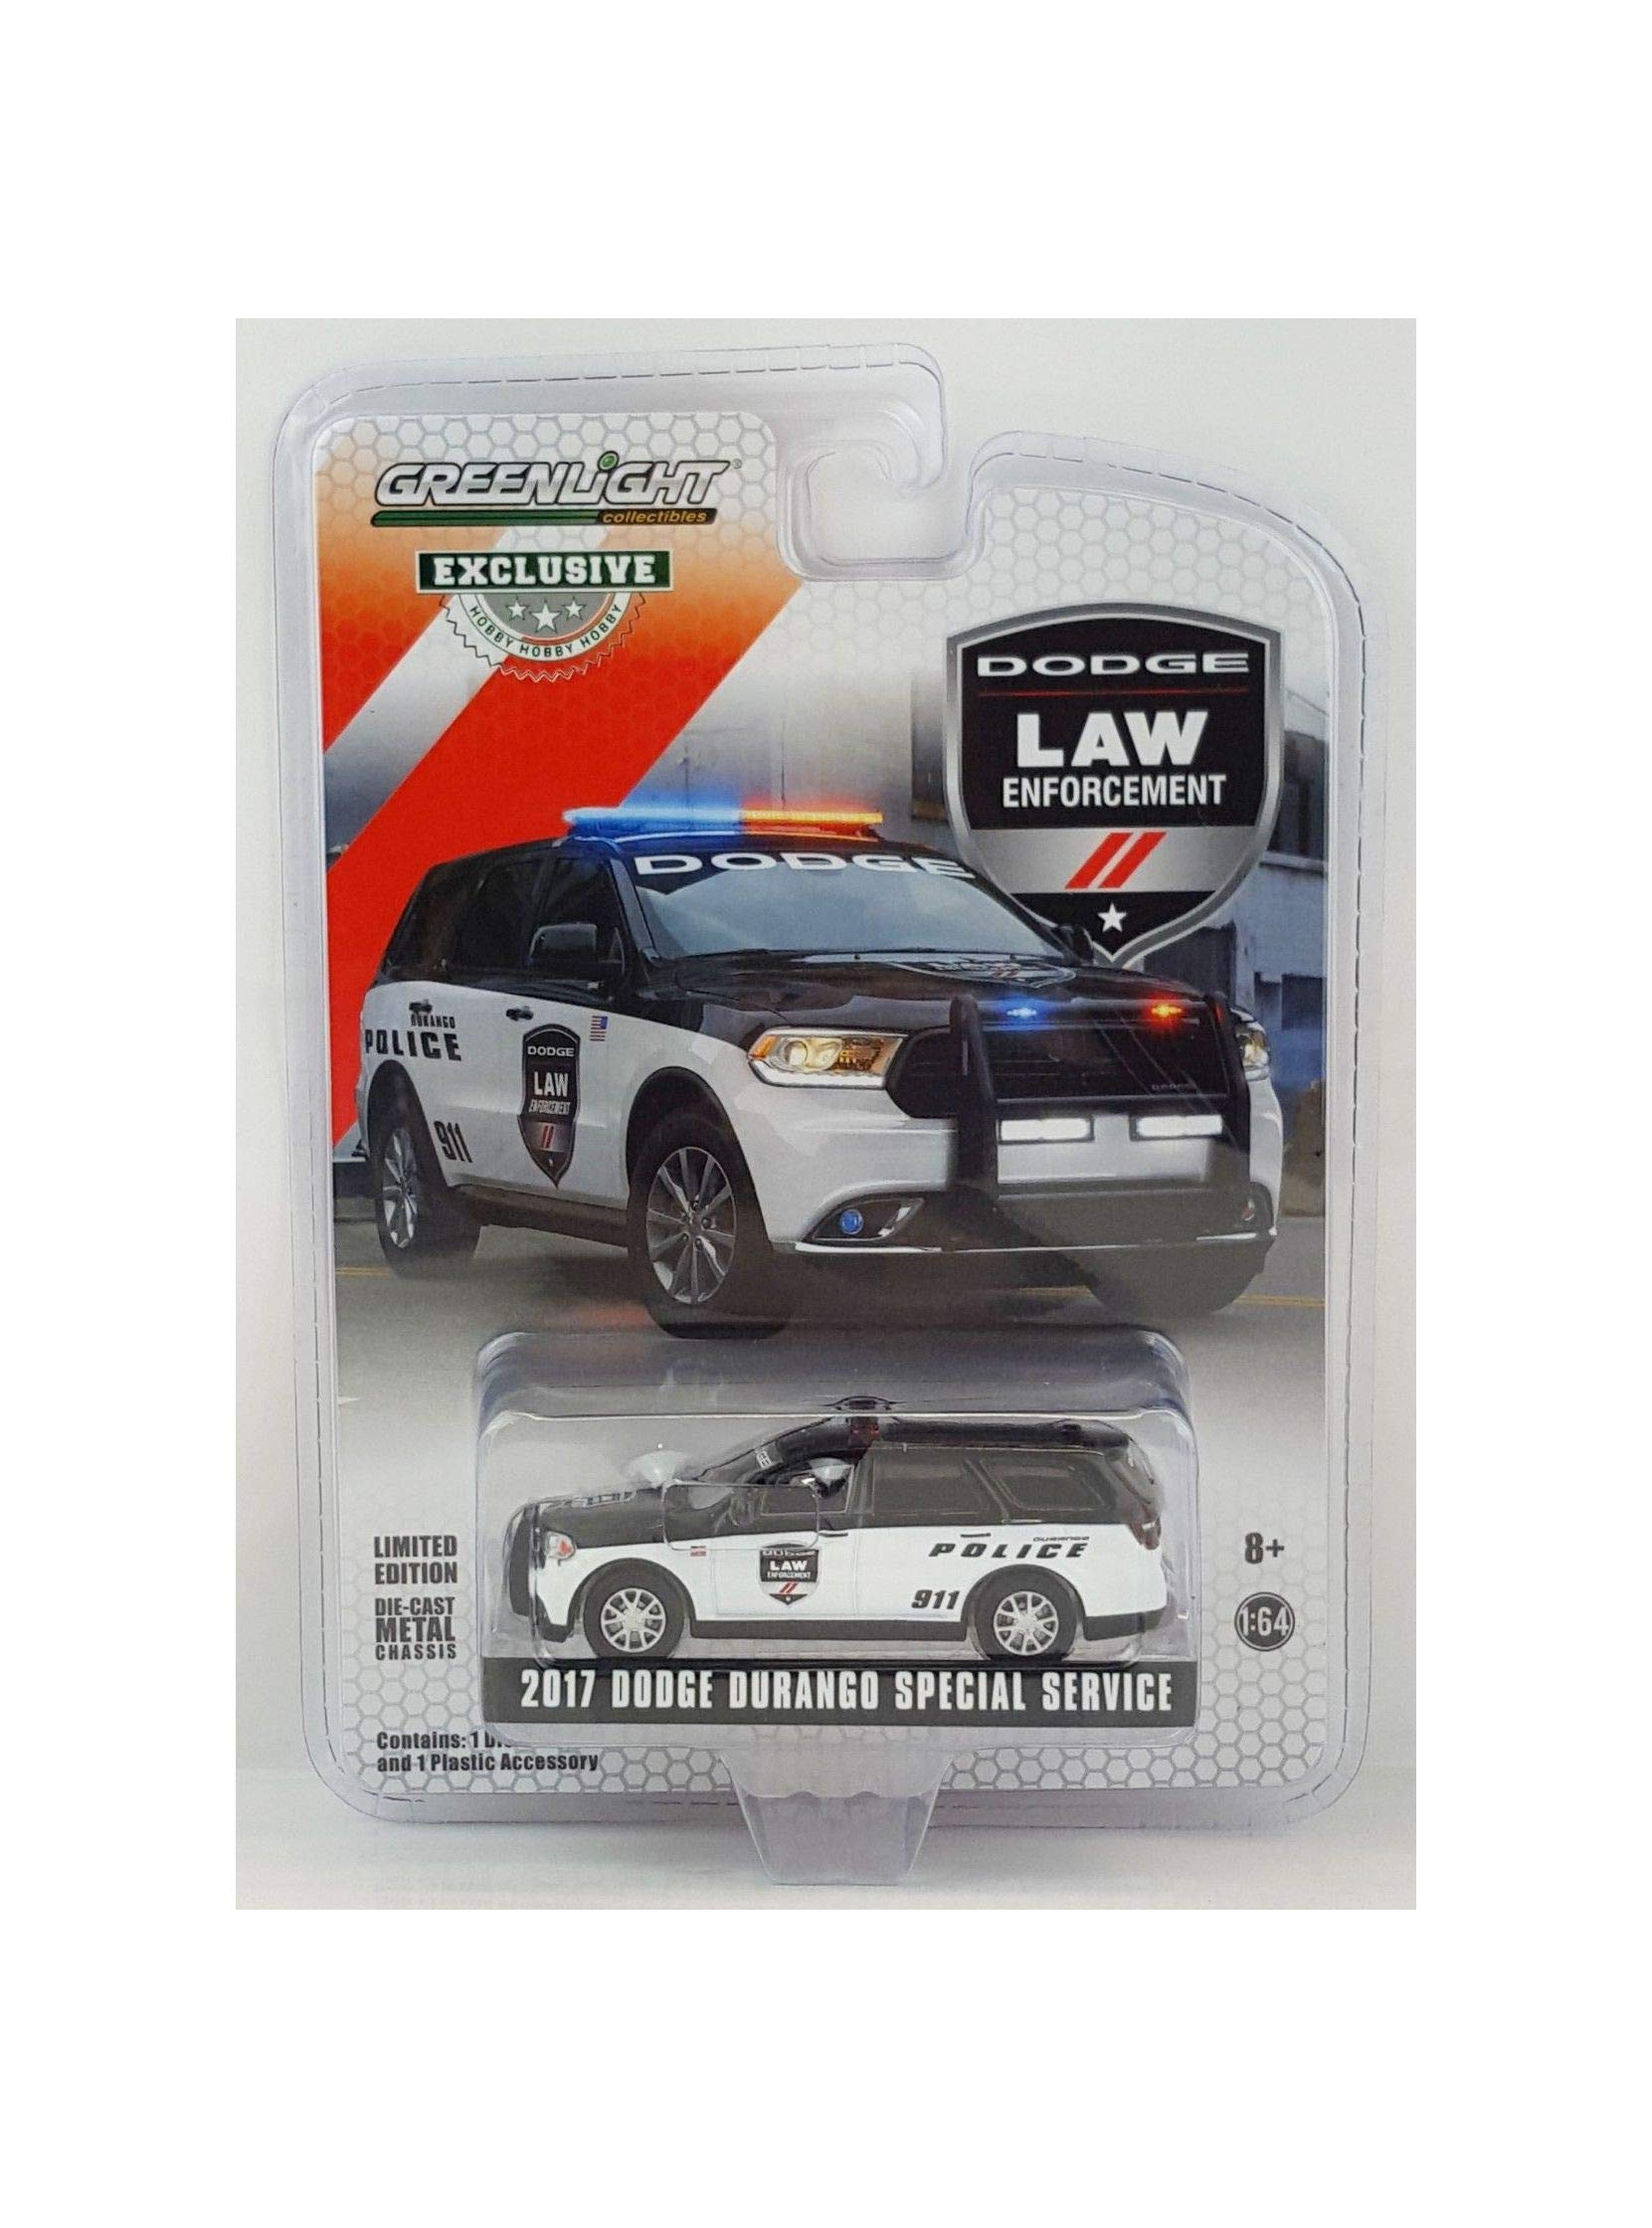 1:64 Love Gift Hobby EX 2018 Dodge Durango Police Law Enforcement Unit NIP Rare Vehicle Toy